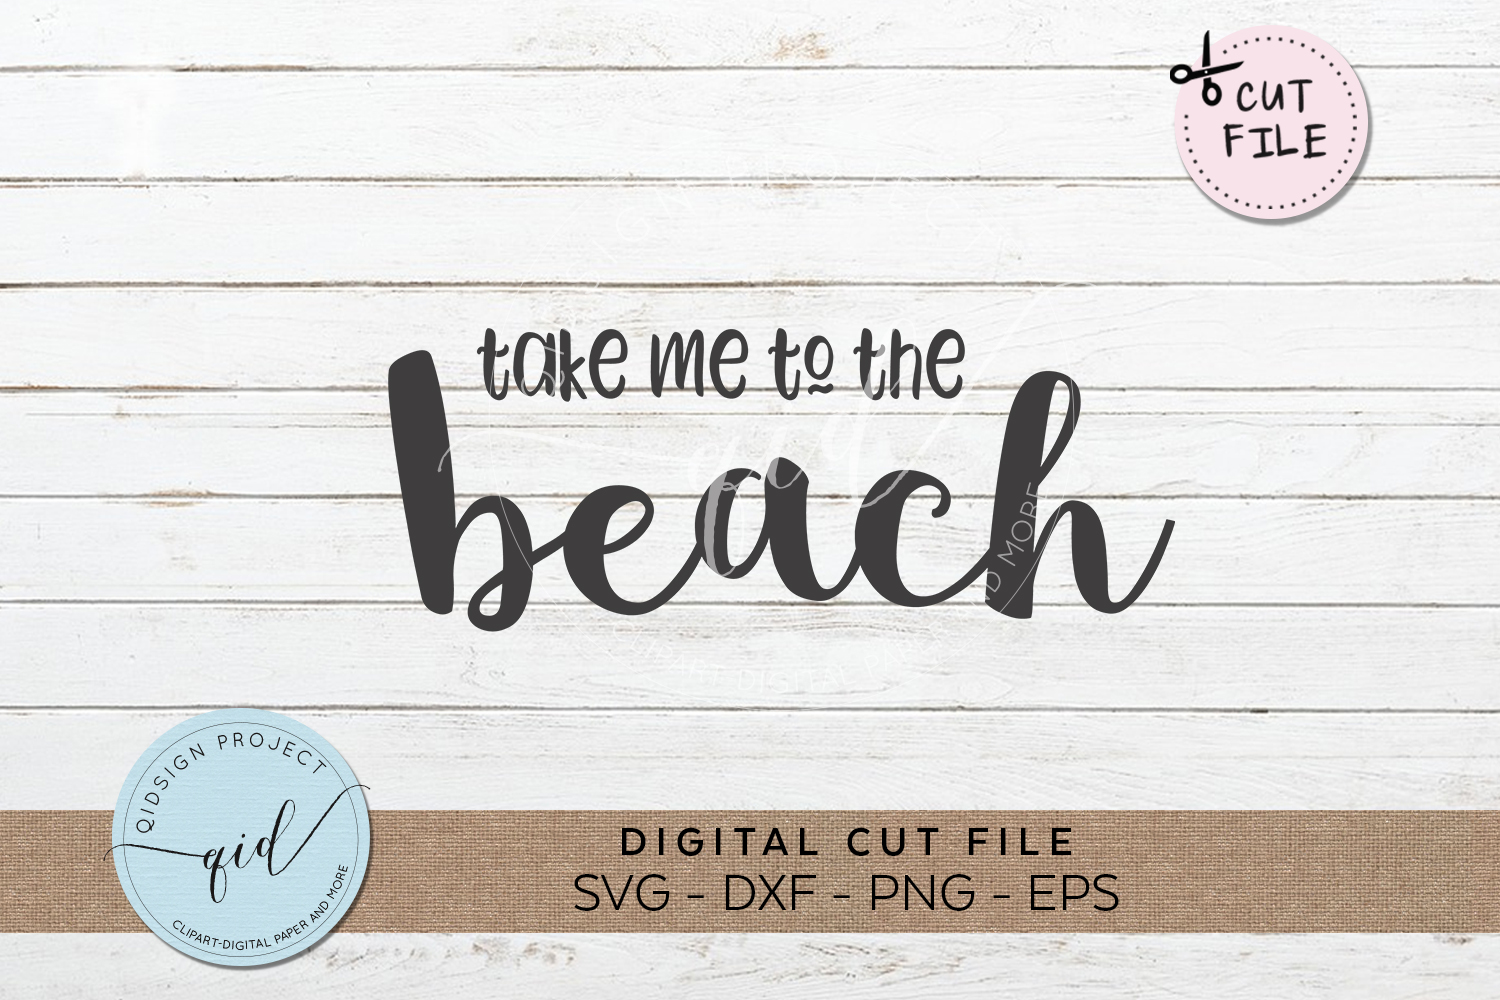 Take me to the beach SVG DXF PNG EPS example image 1